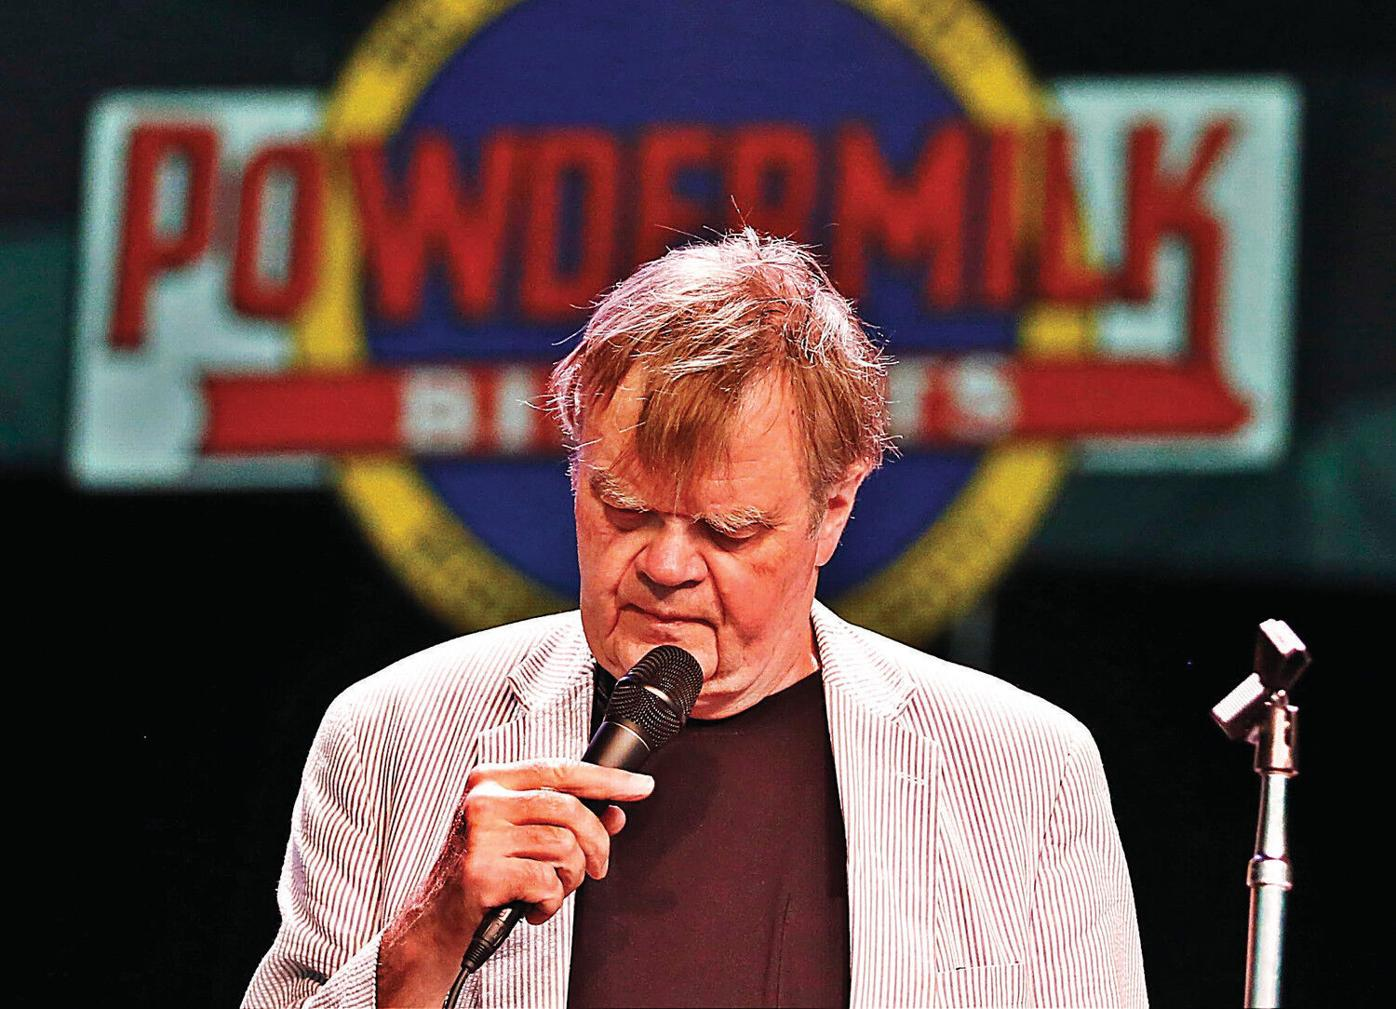 After show canceled, Keillor says firing 'kind of bewildering to me'